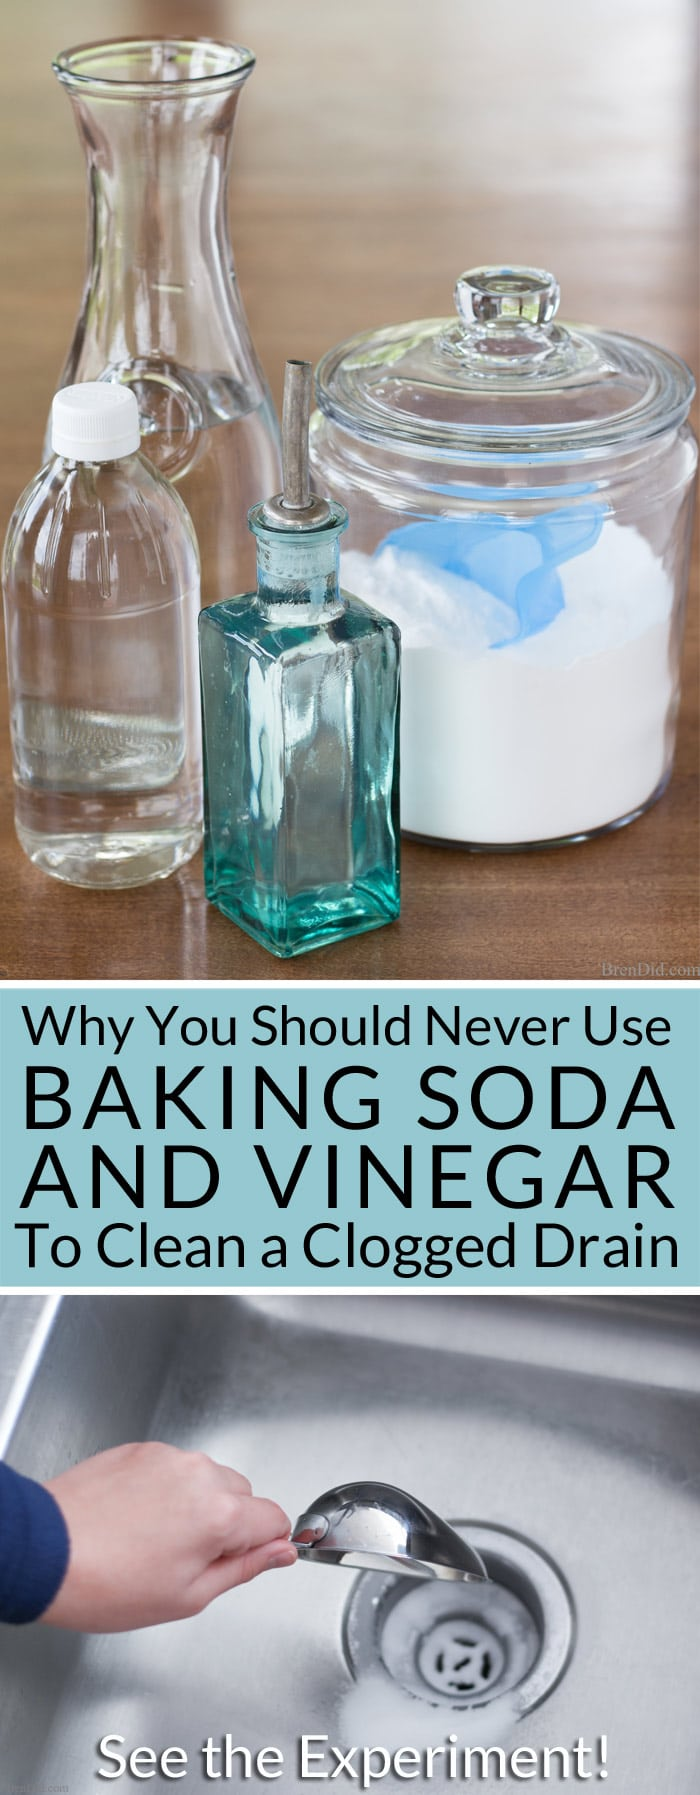 why you should never use baking soda and vinegar to clean clogged drains kitchen sink clogged Want to naturally unclog a sink or clean a slow moving drain Learn why you